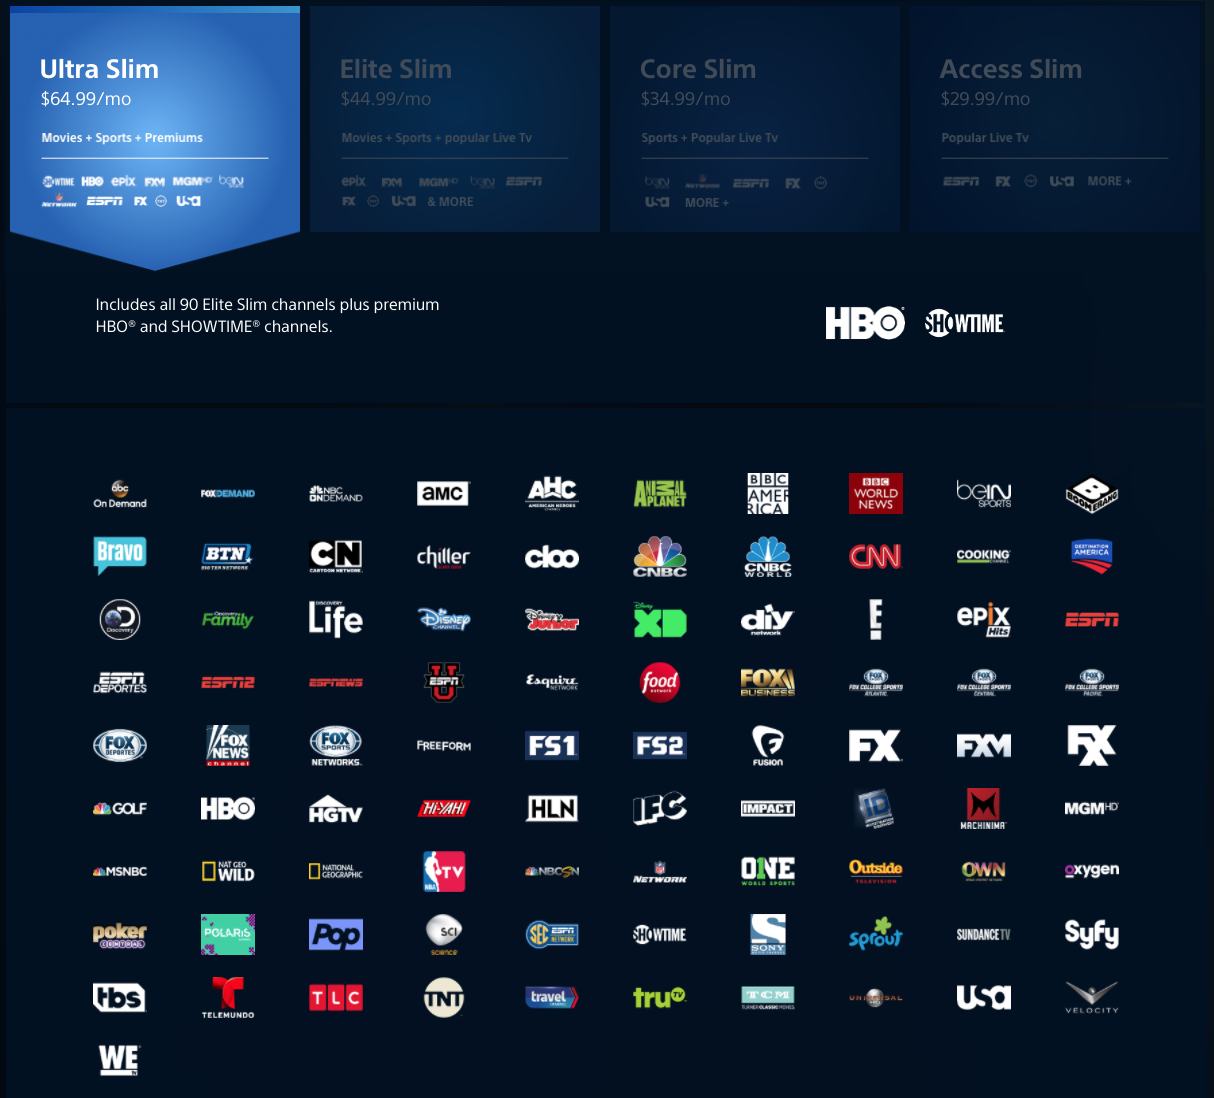 Playstation Vue Pricing